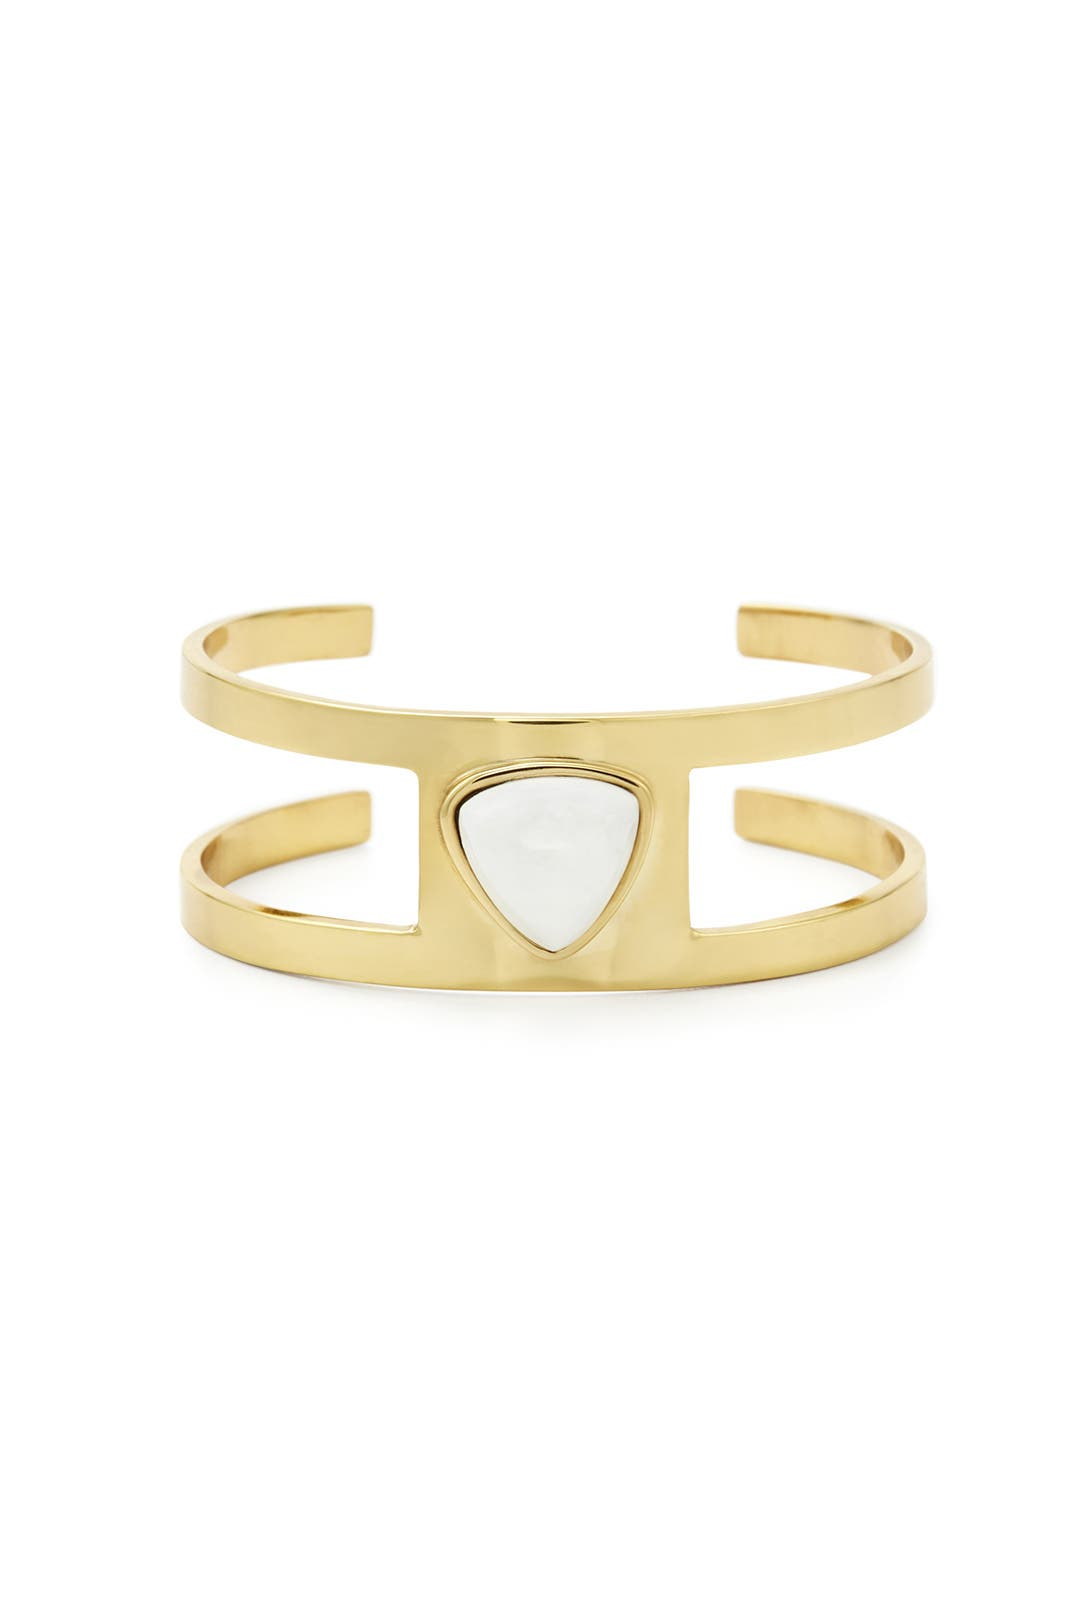 Highline Cuff by Lizzie Fortunato